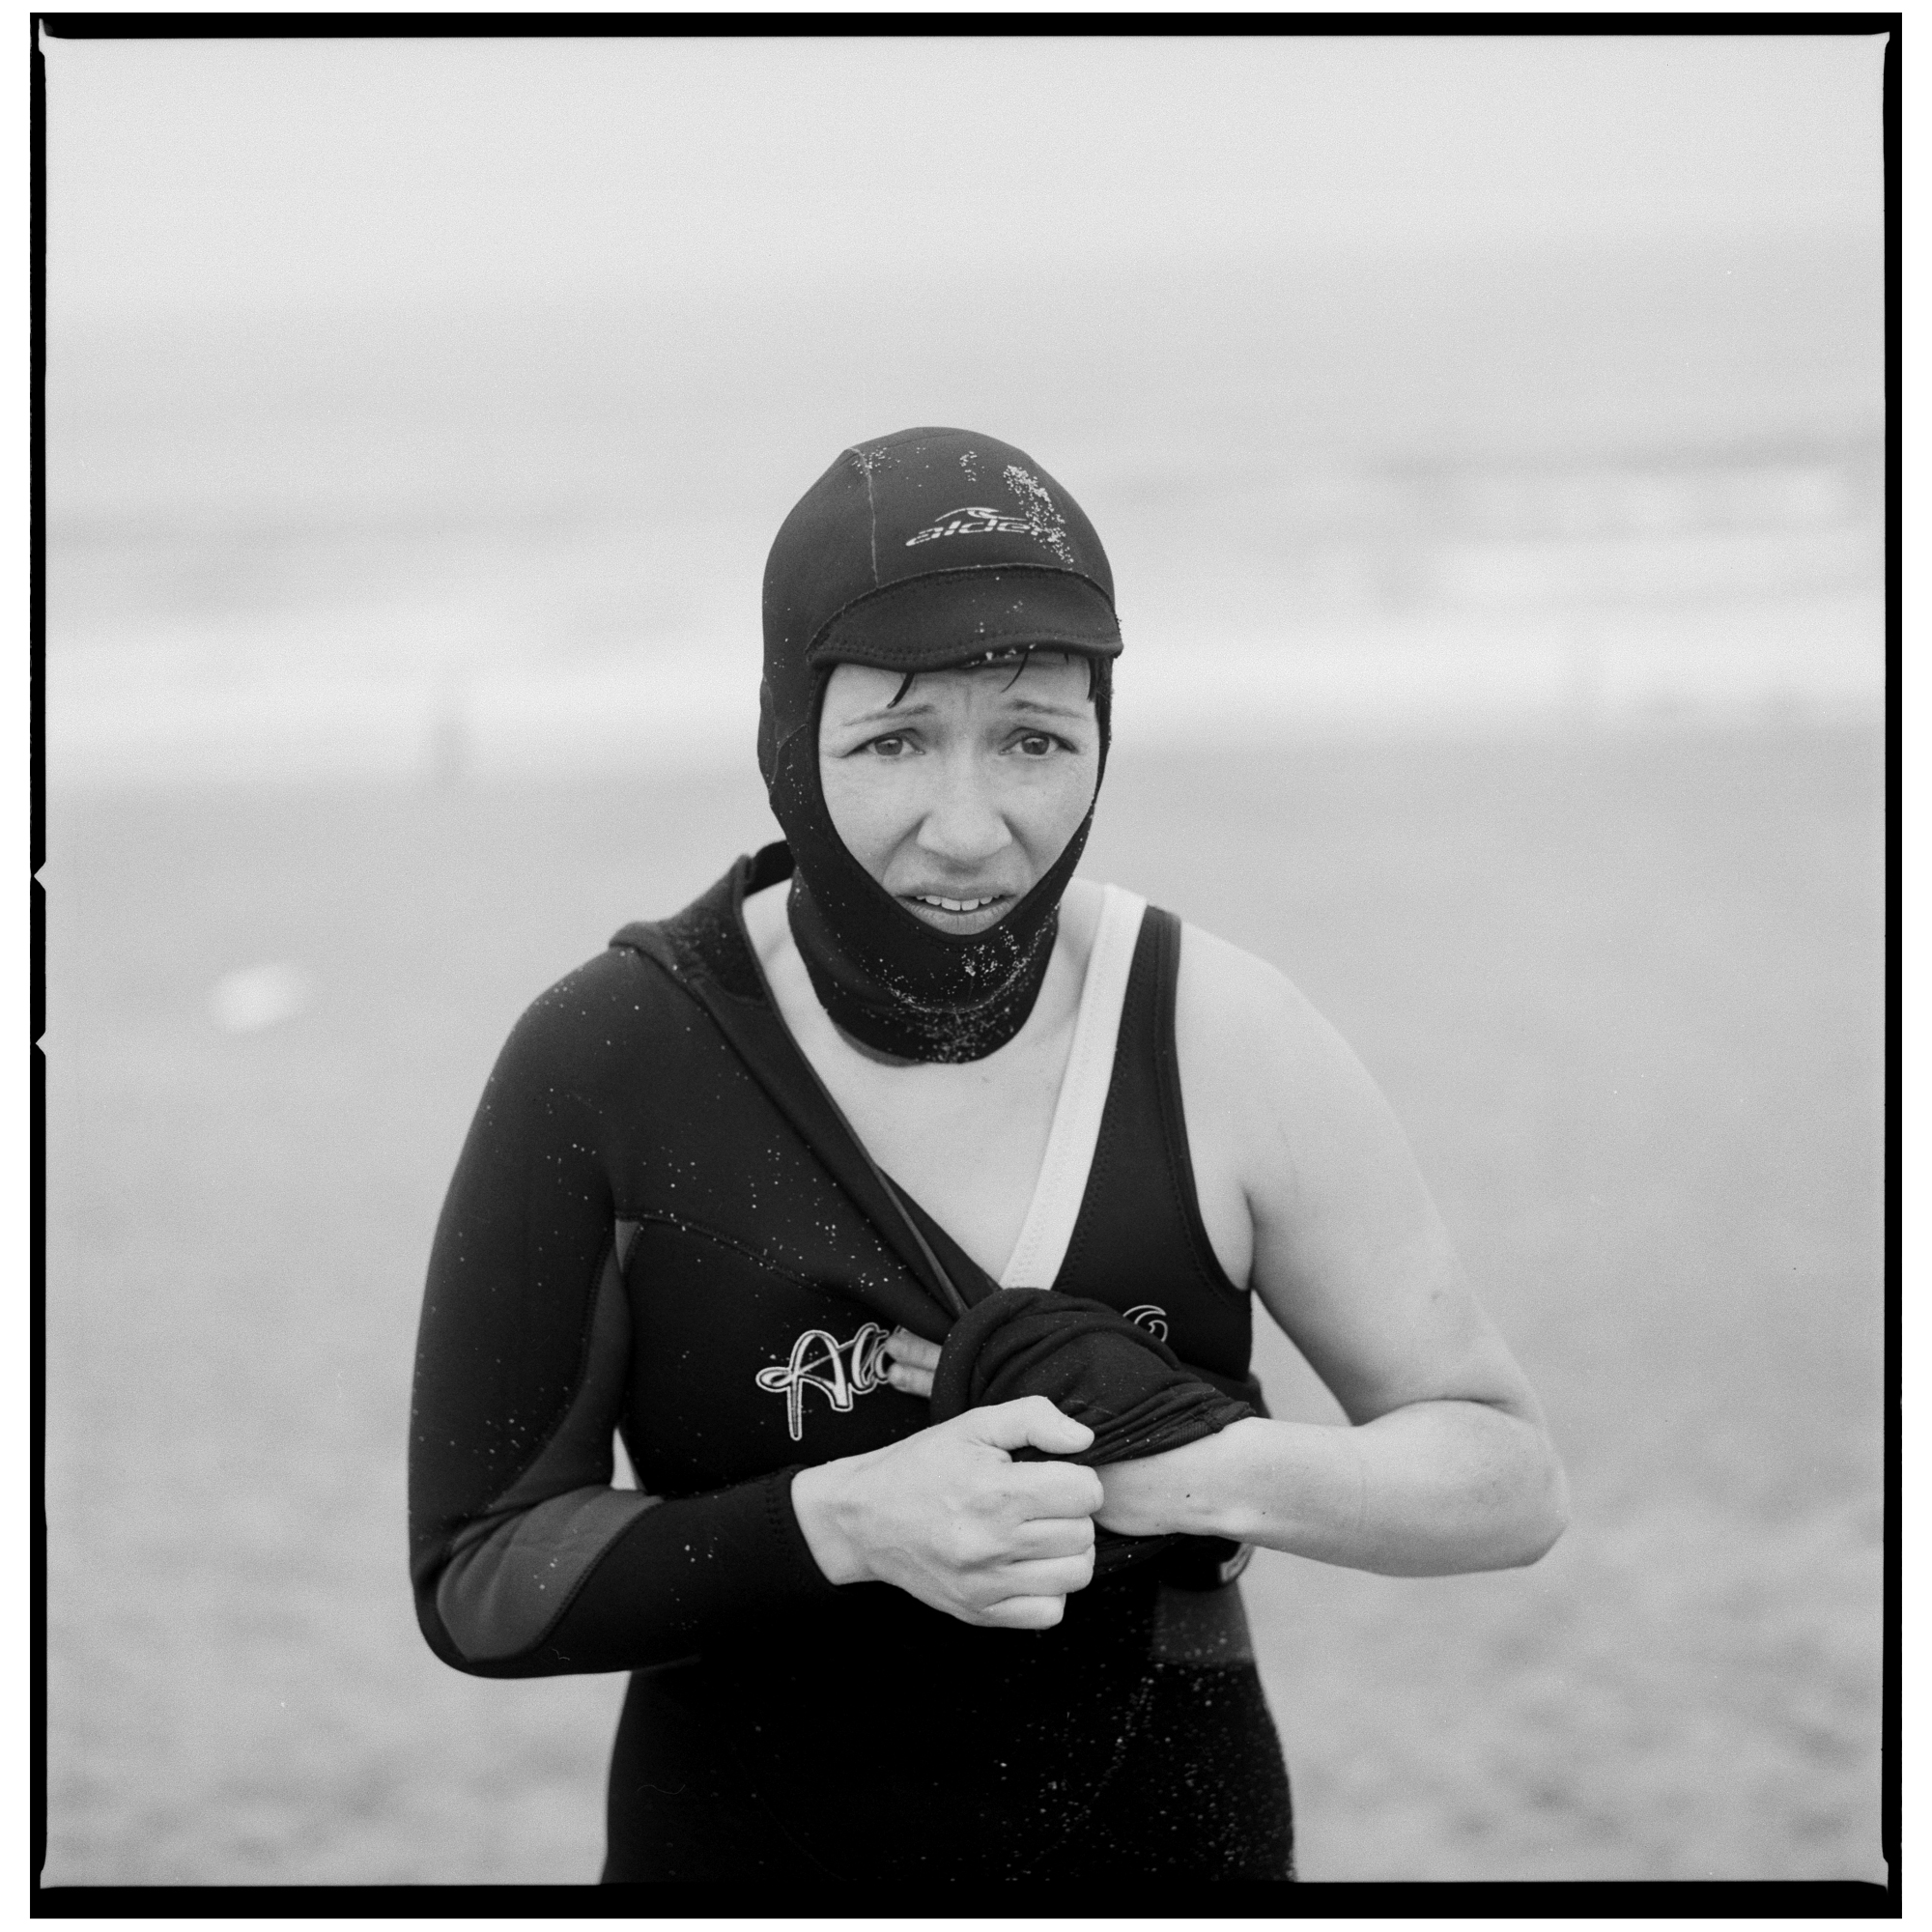 Grant Smith - The Chill - woman with wet suit half on